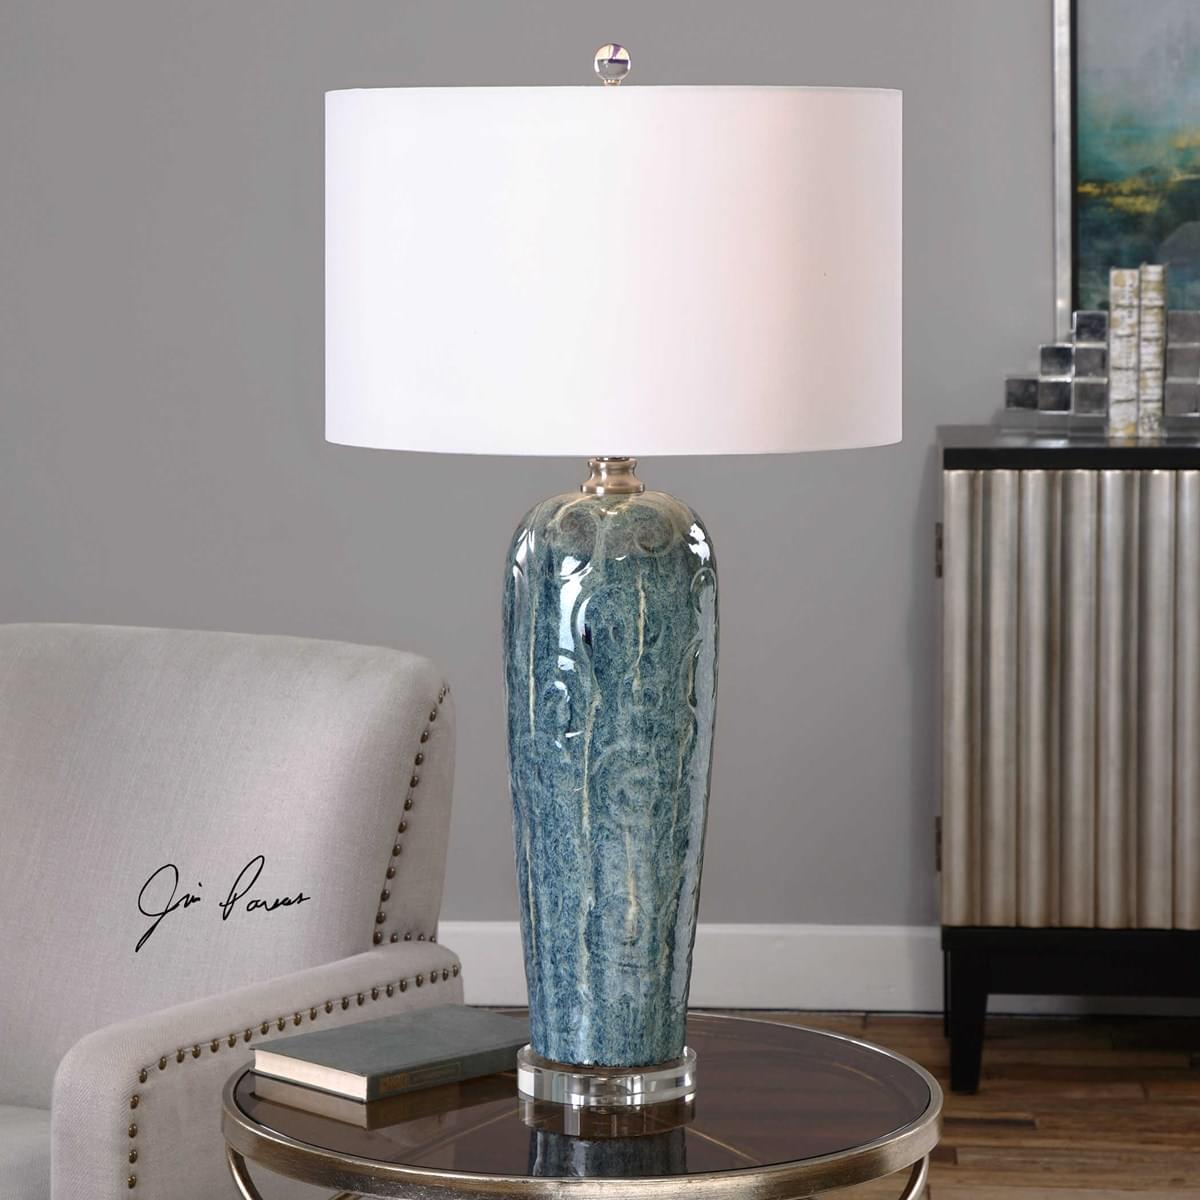 Uttermost Accessories Maira Floor Lamp for Living Room at Mums Place Furniture Monterey CA